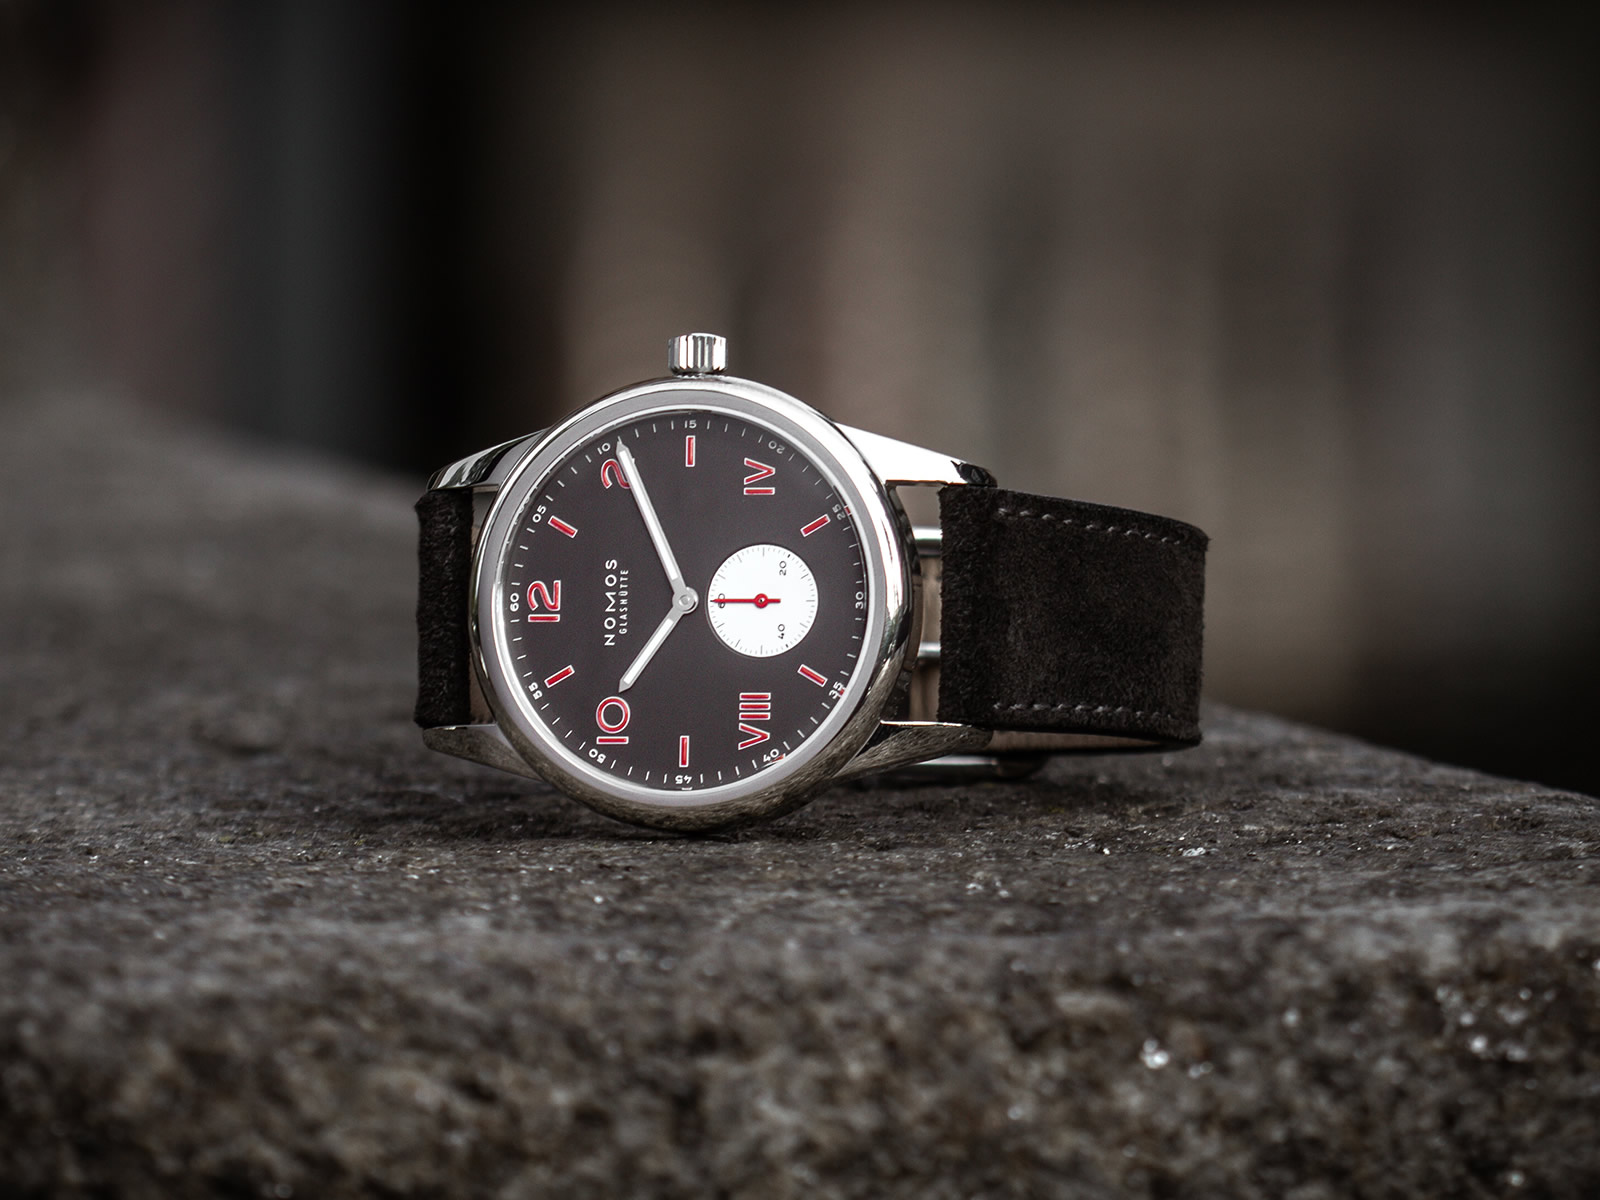 738-s1-nomos-club-campus-amsterdam-limited-edition-by-ace-jewelers-4-.jpg